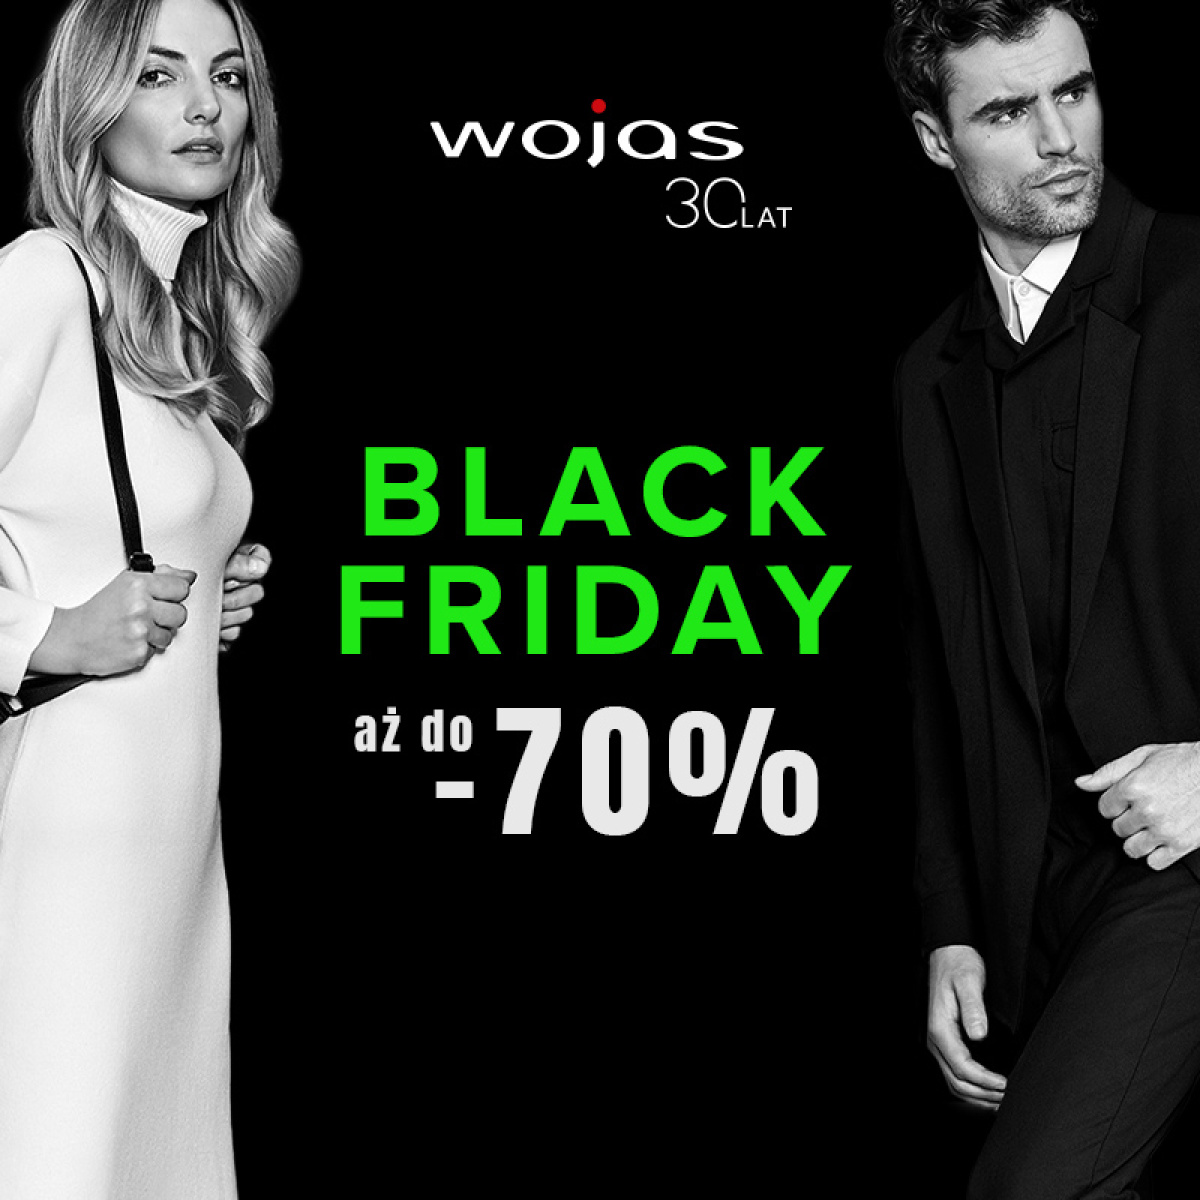 BLACK FRIDAY w WOJAS !!!